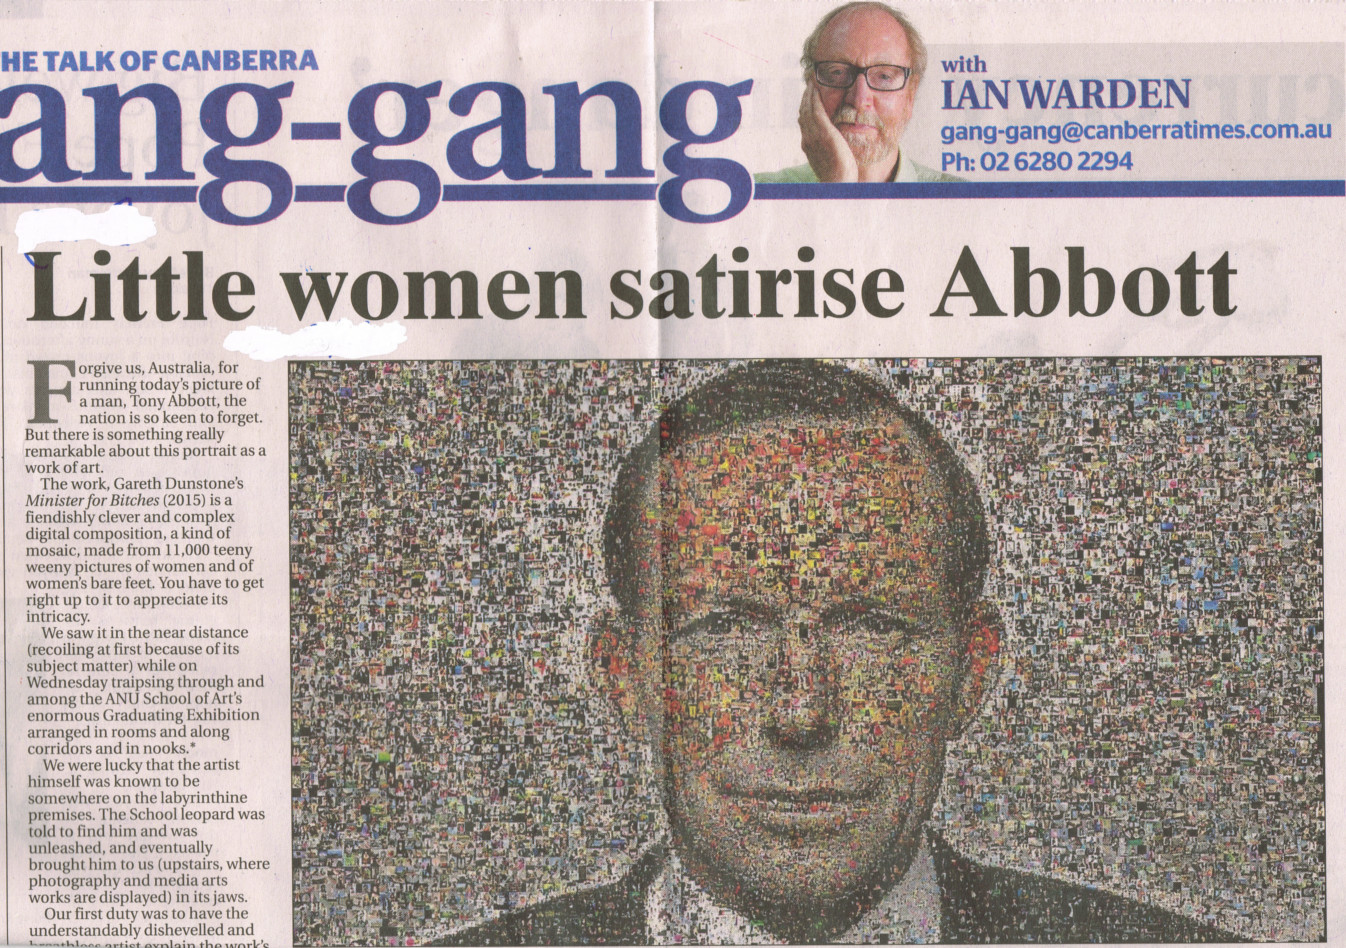 Little women satirise Abbott